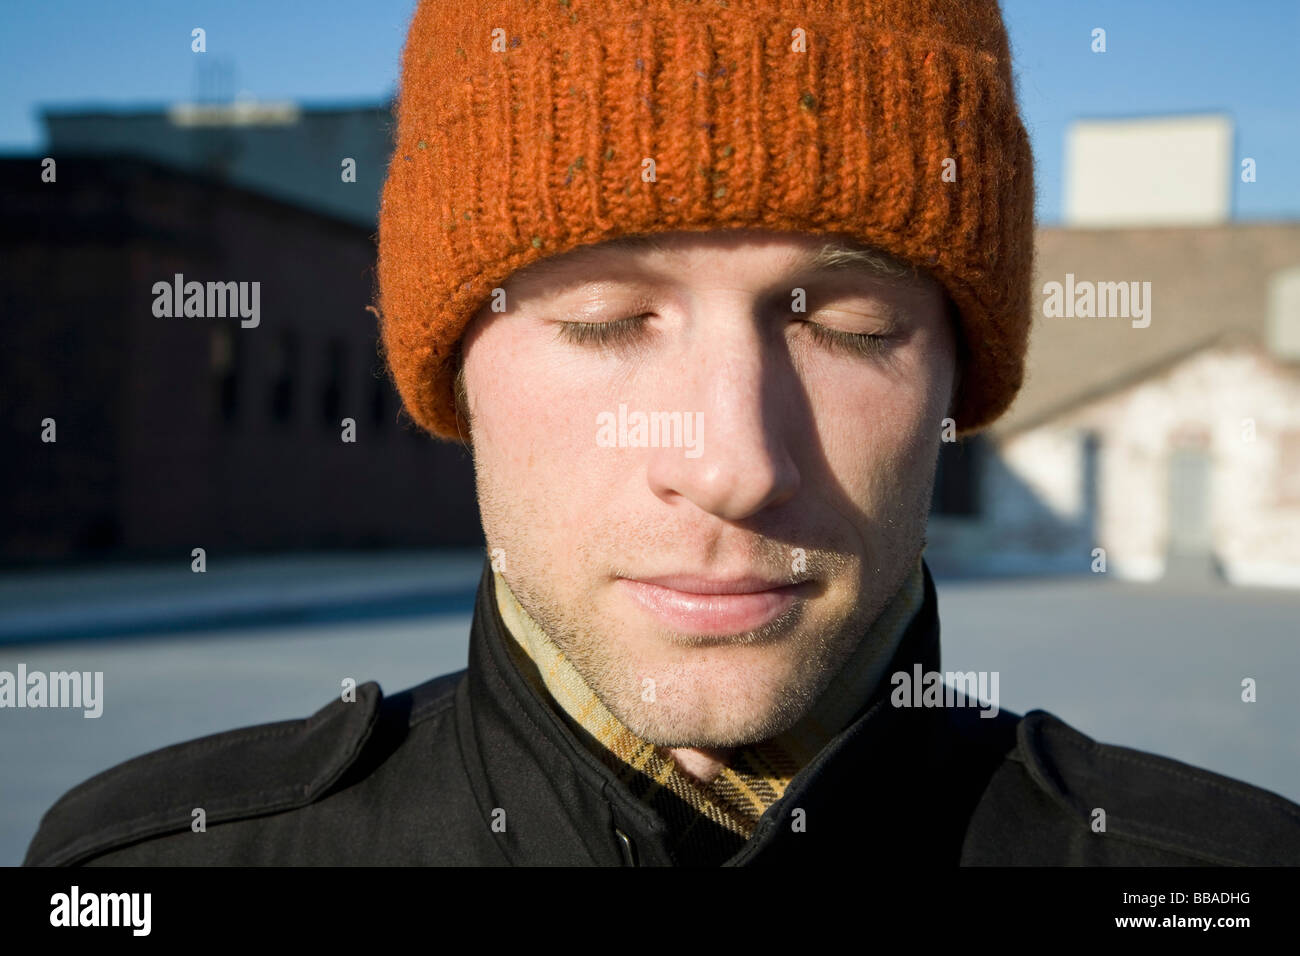 A man with a knit hat, portrait - Stock Image